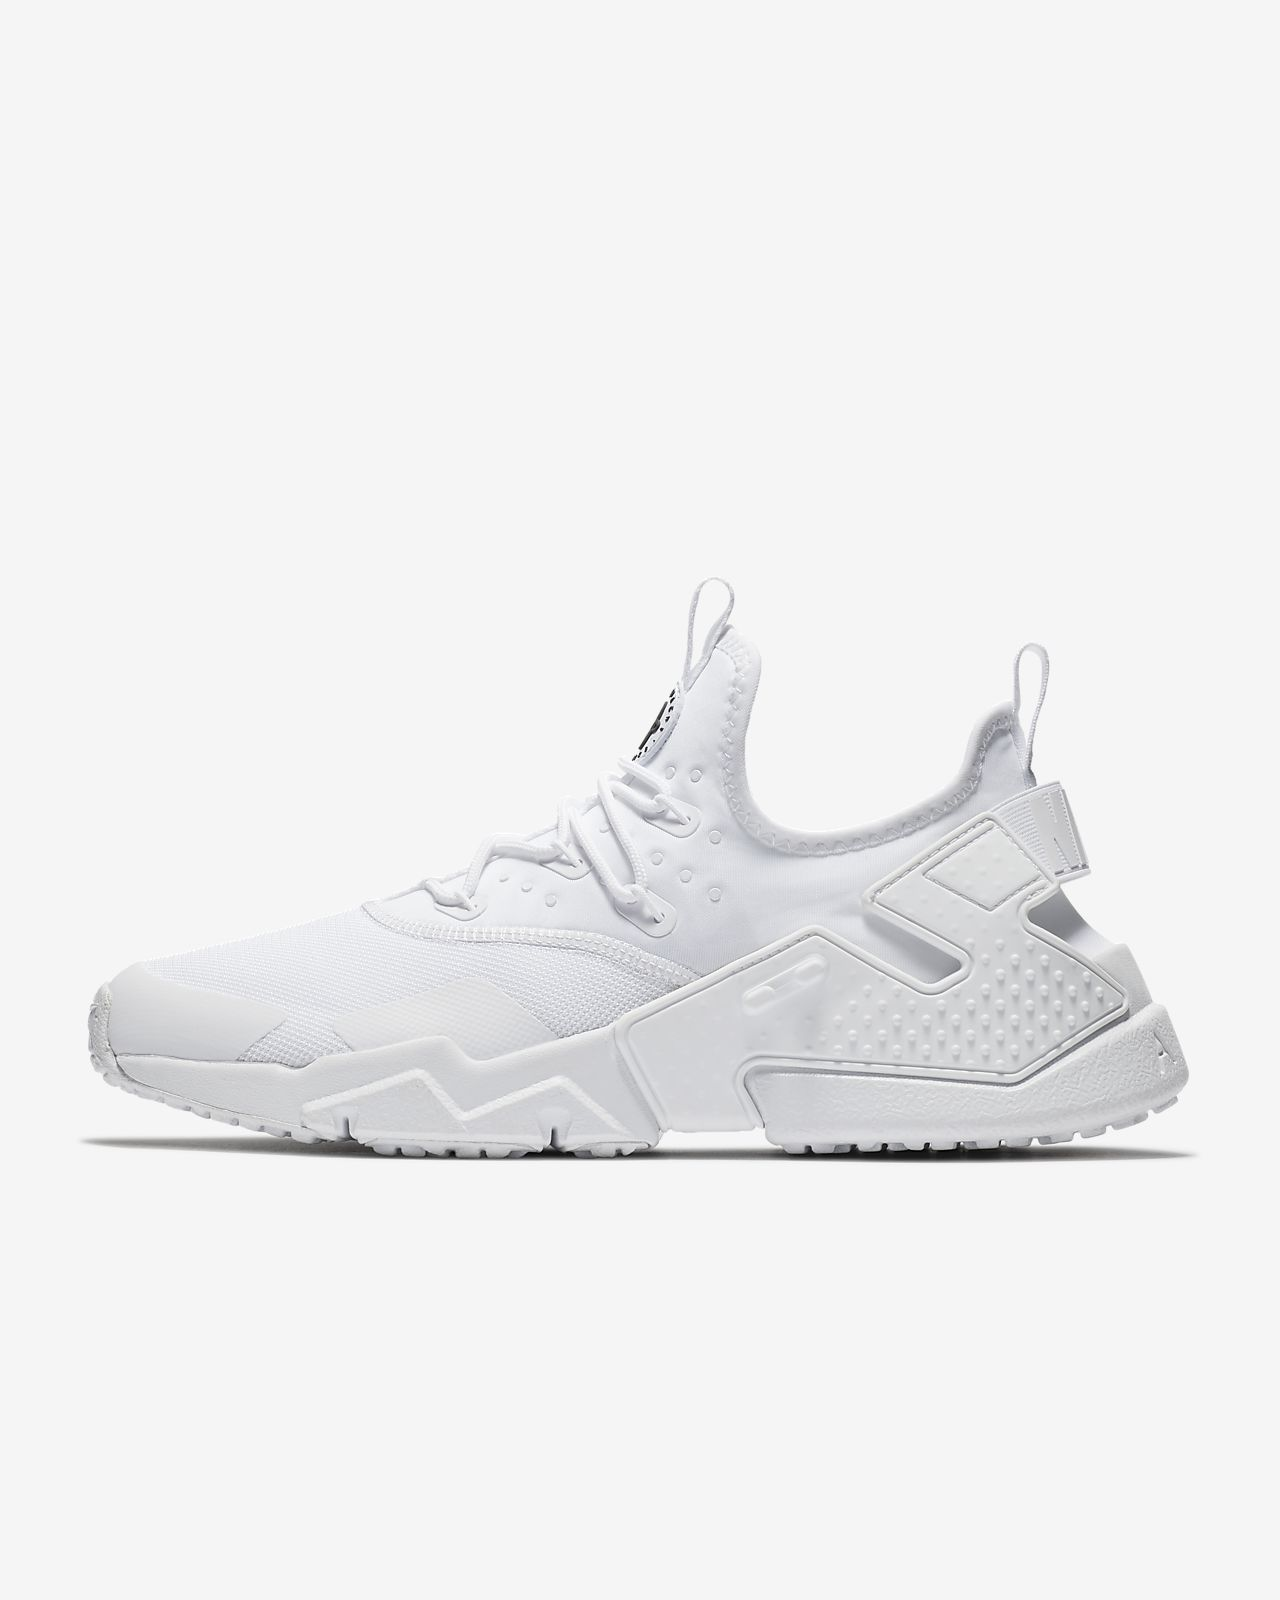 0c411f202be3 Nike Air Huarache Drift Men s Shoe. Nike.com